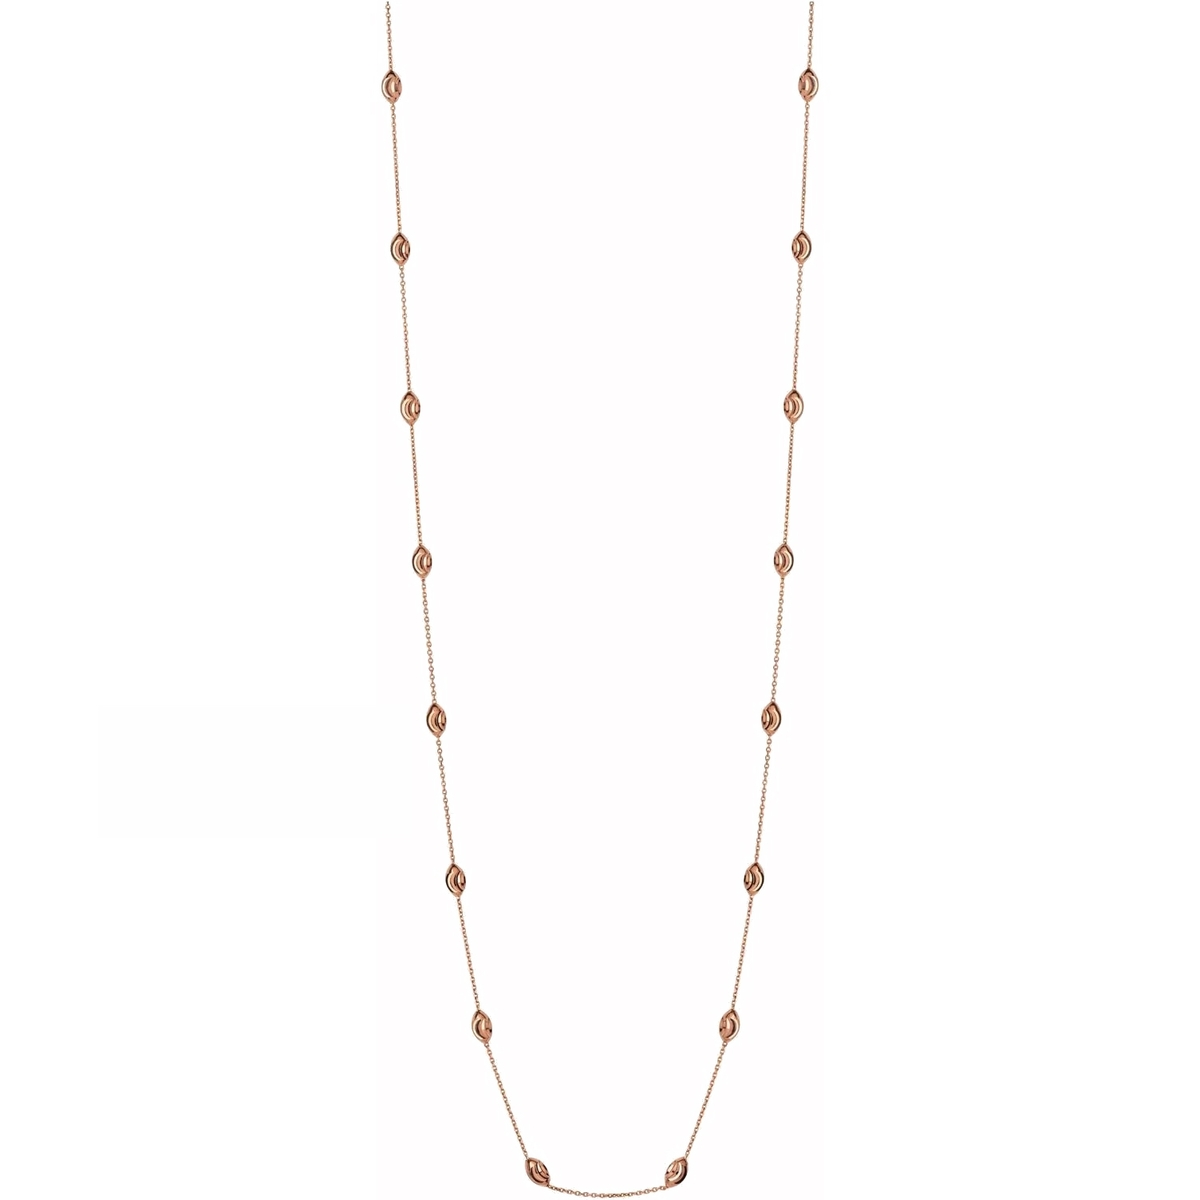 e766a99136ef Links of London Rose Vermeil Essentials Beaded Chain Necklace (80cm)  5020.3378